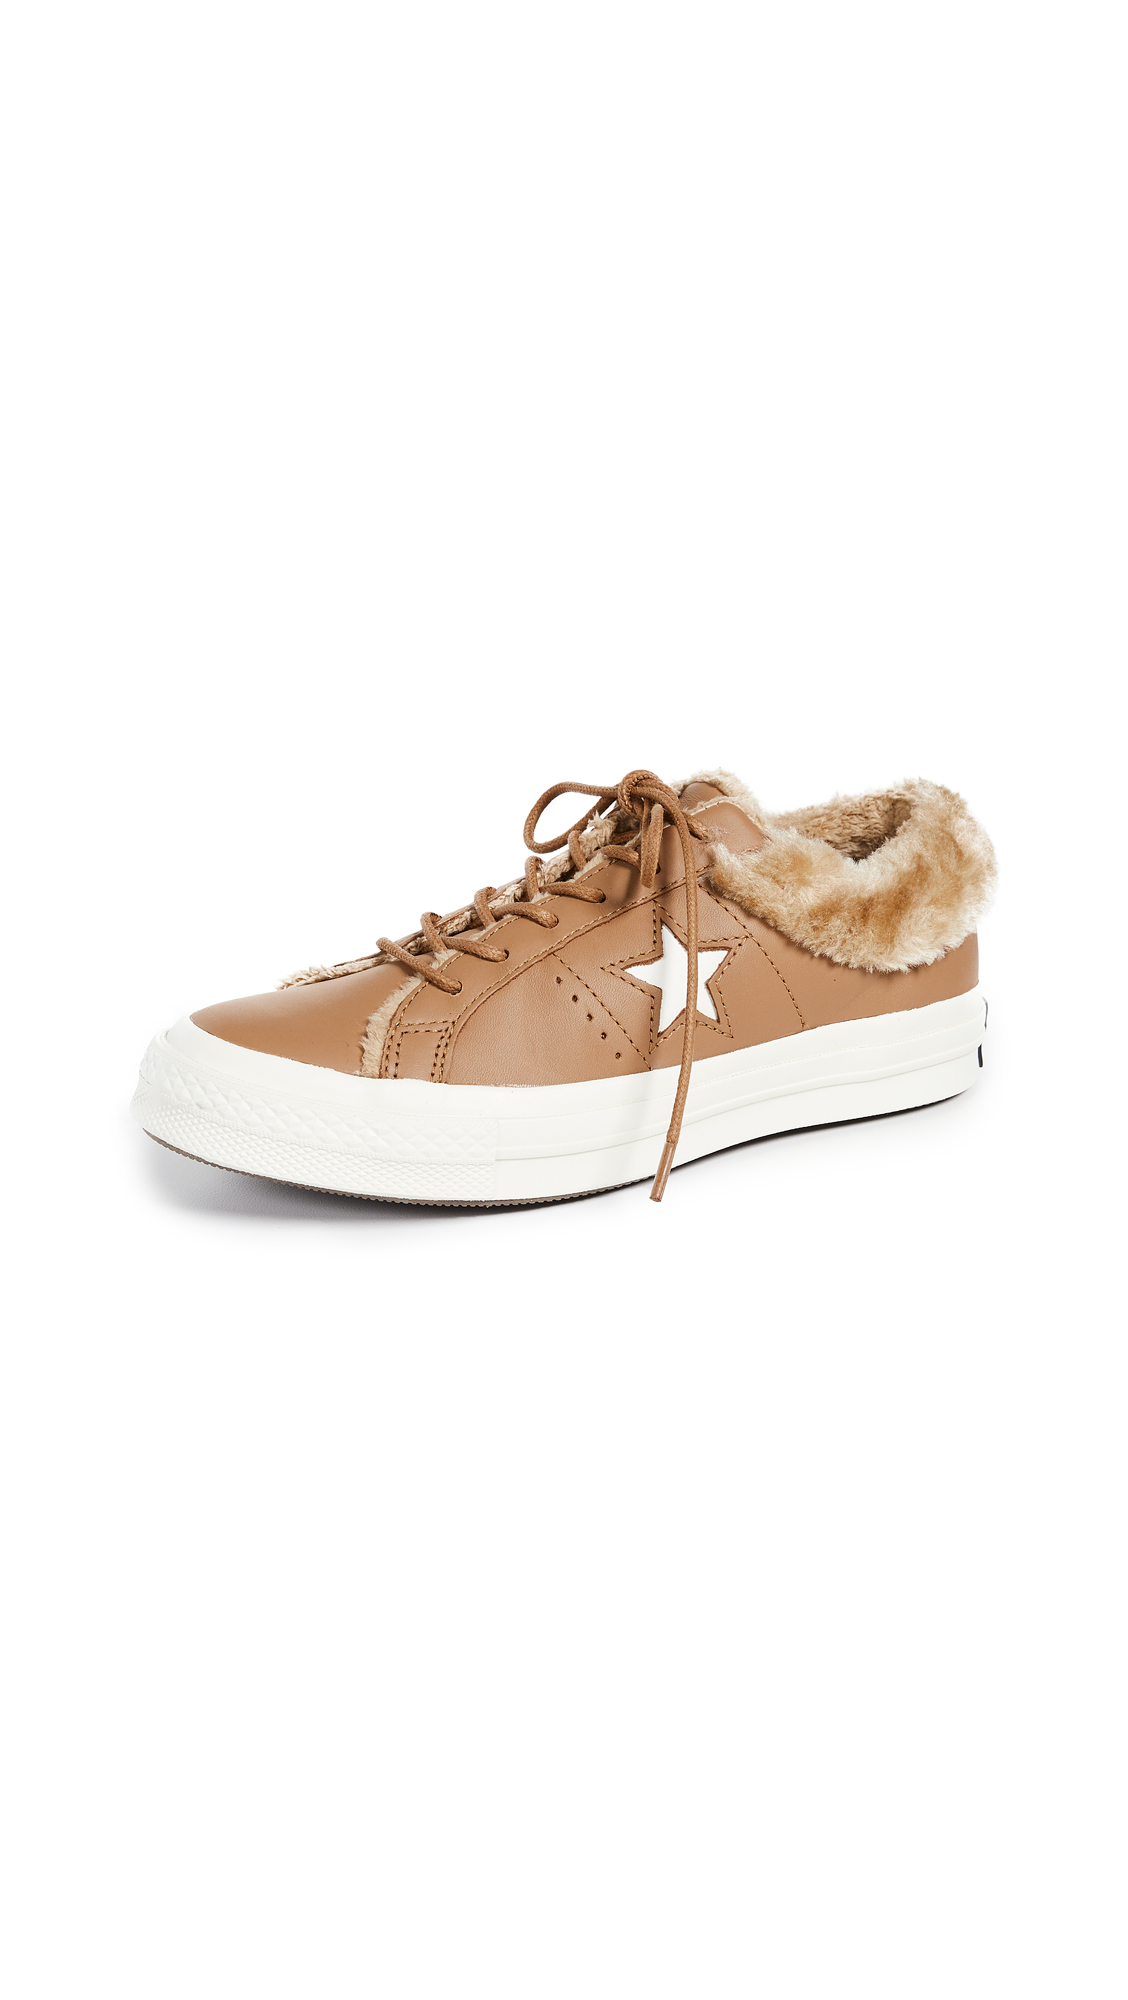 Converse One Star Ox Sneakers - Burnt Caramel